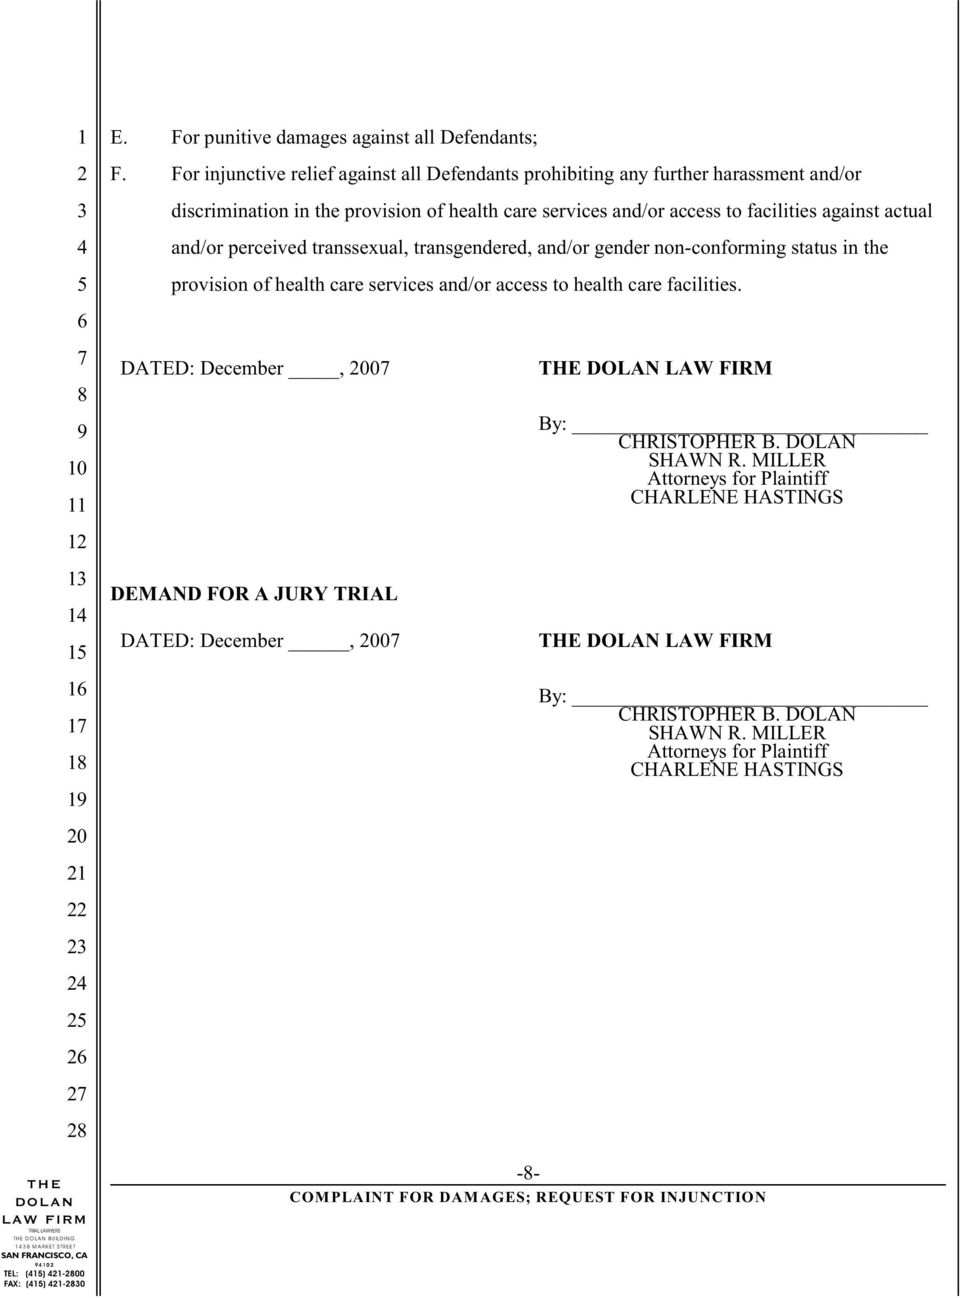 facilities against actual and/or perceived transsexual, transgendered, and/or gender non-conforming status in the provision of health care services and/or